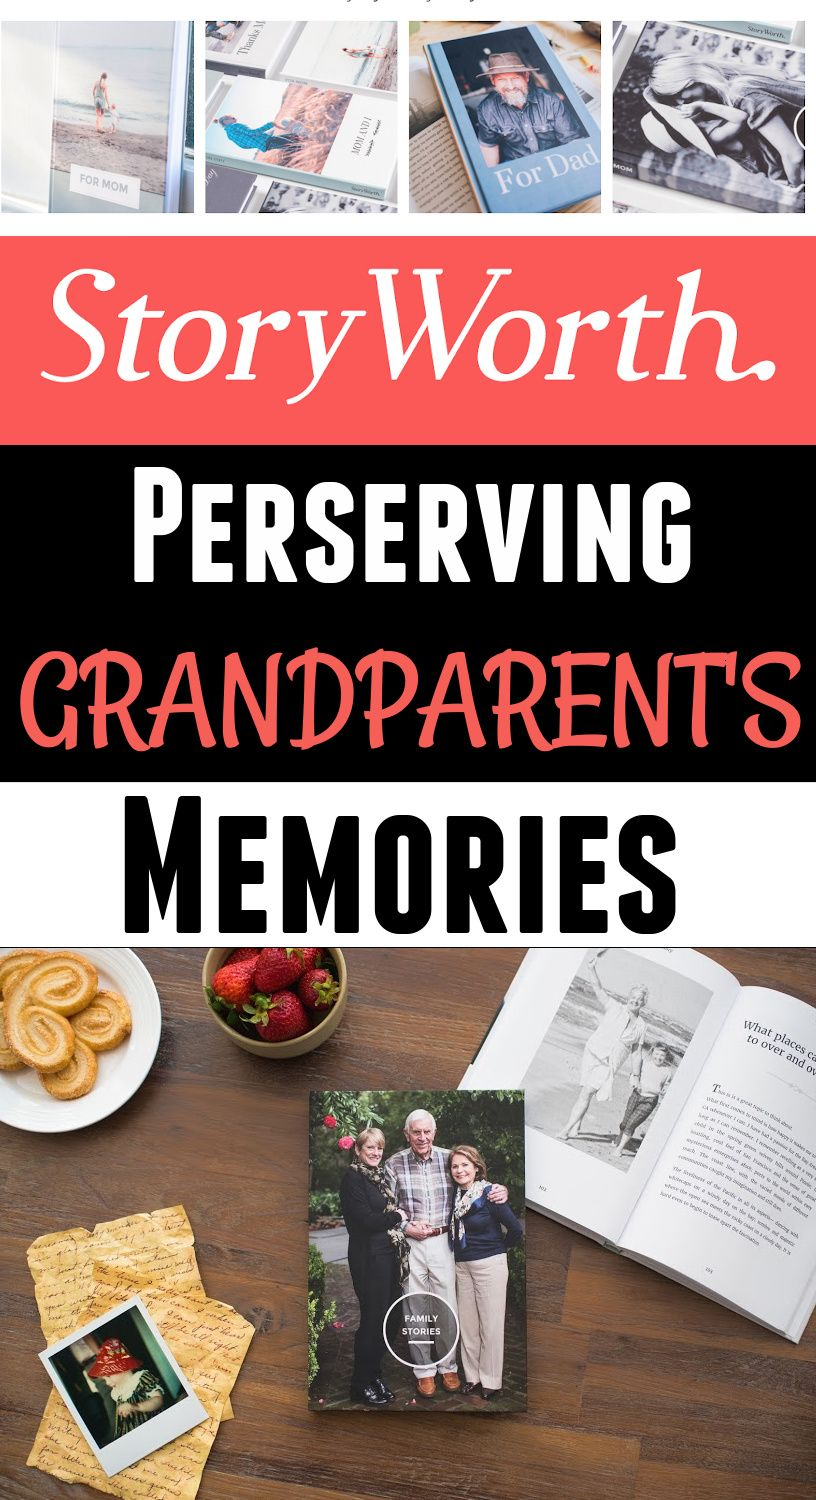 Storyworth the best was to preserve grandparent's